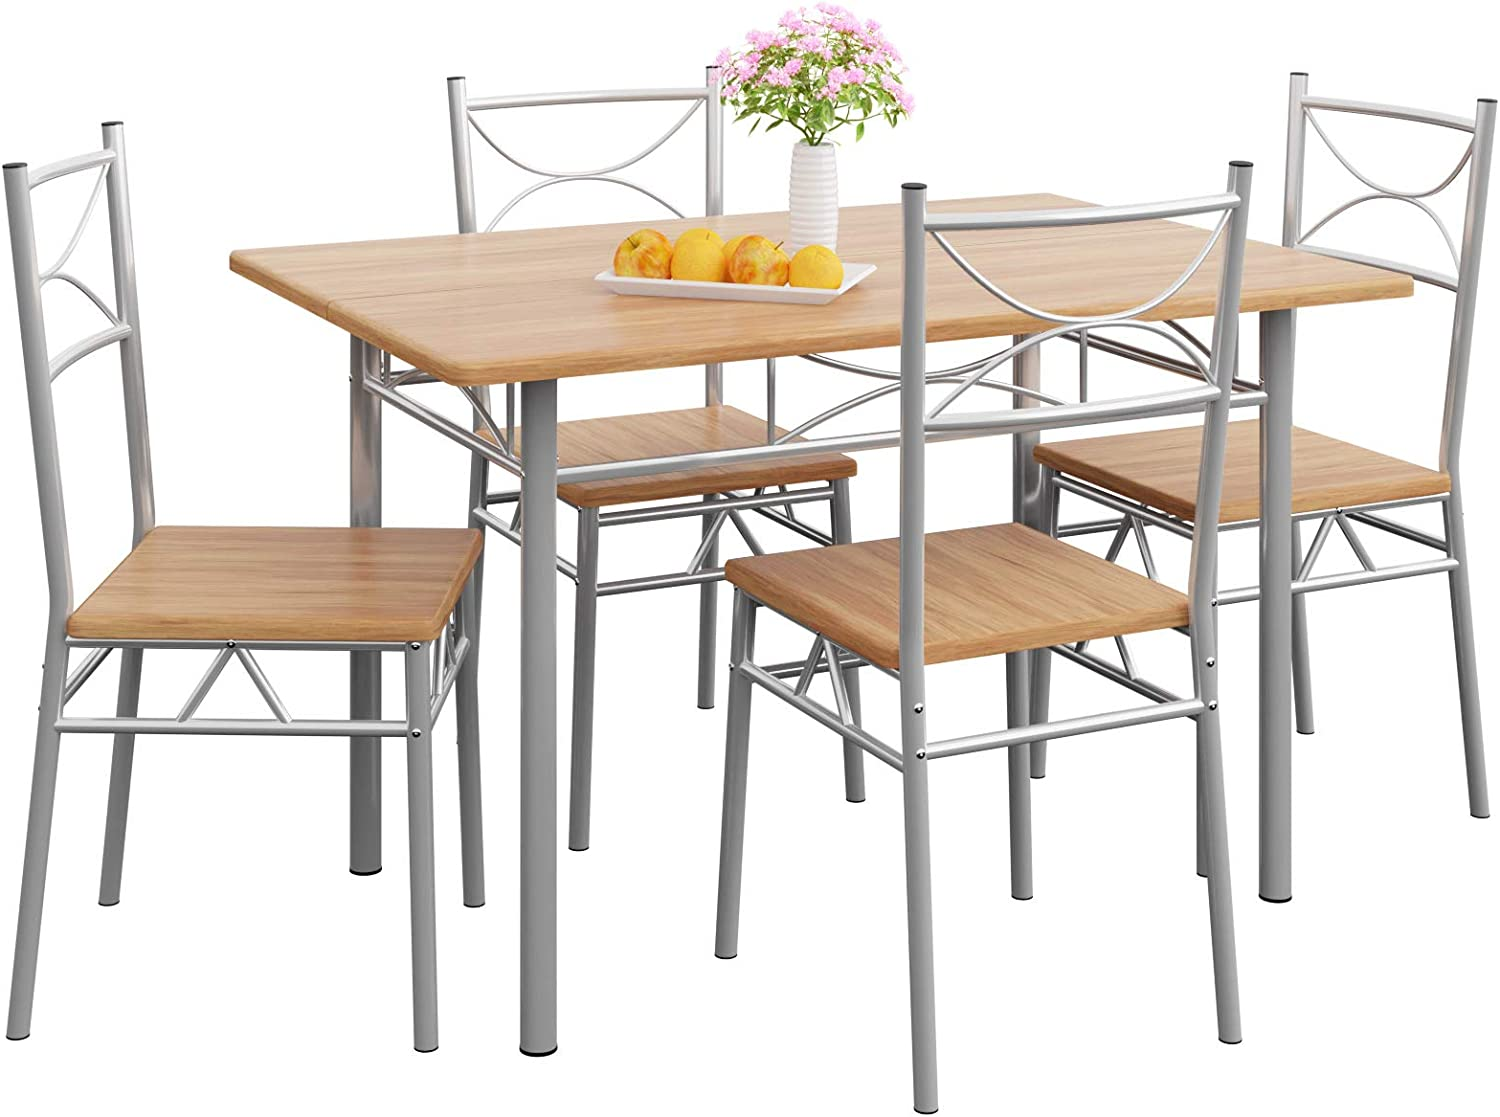 Casaria Dining Table Kitchen Table with 9 Chairs Dining Room Set Kitchen  Table Chair Set